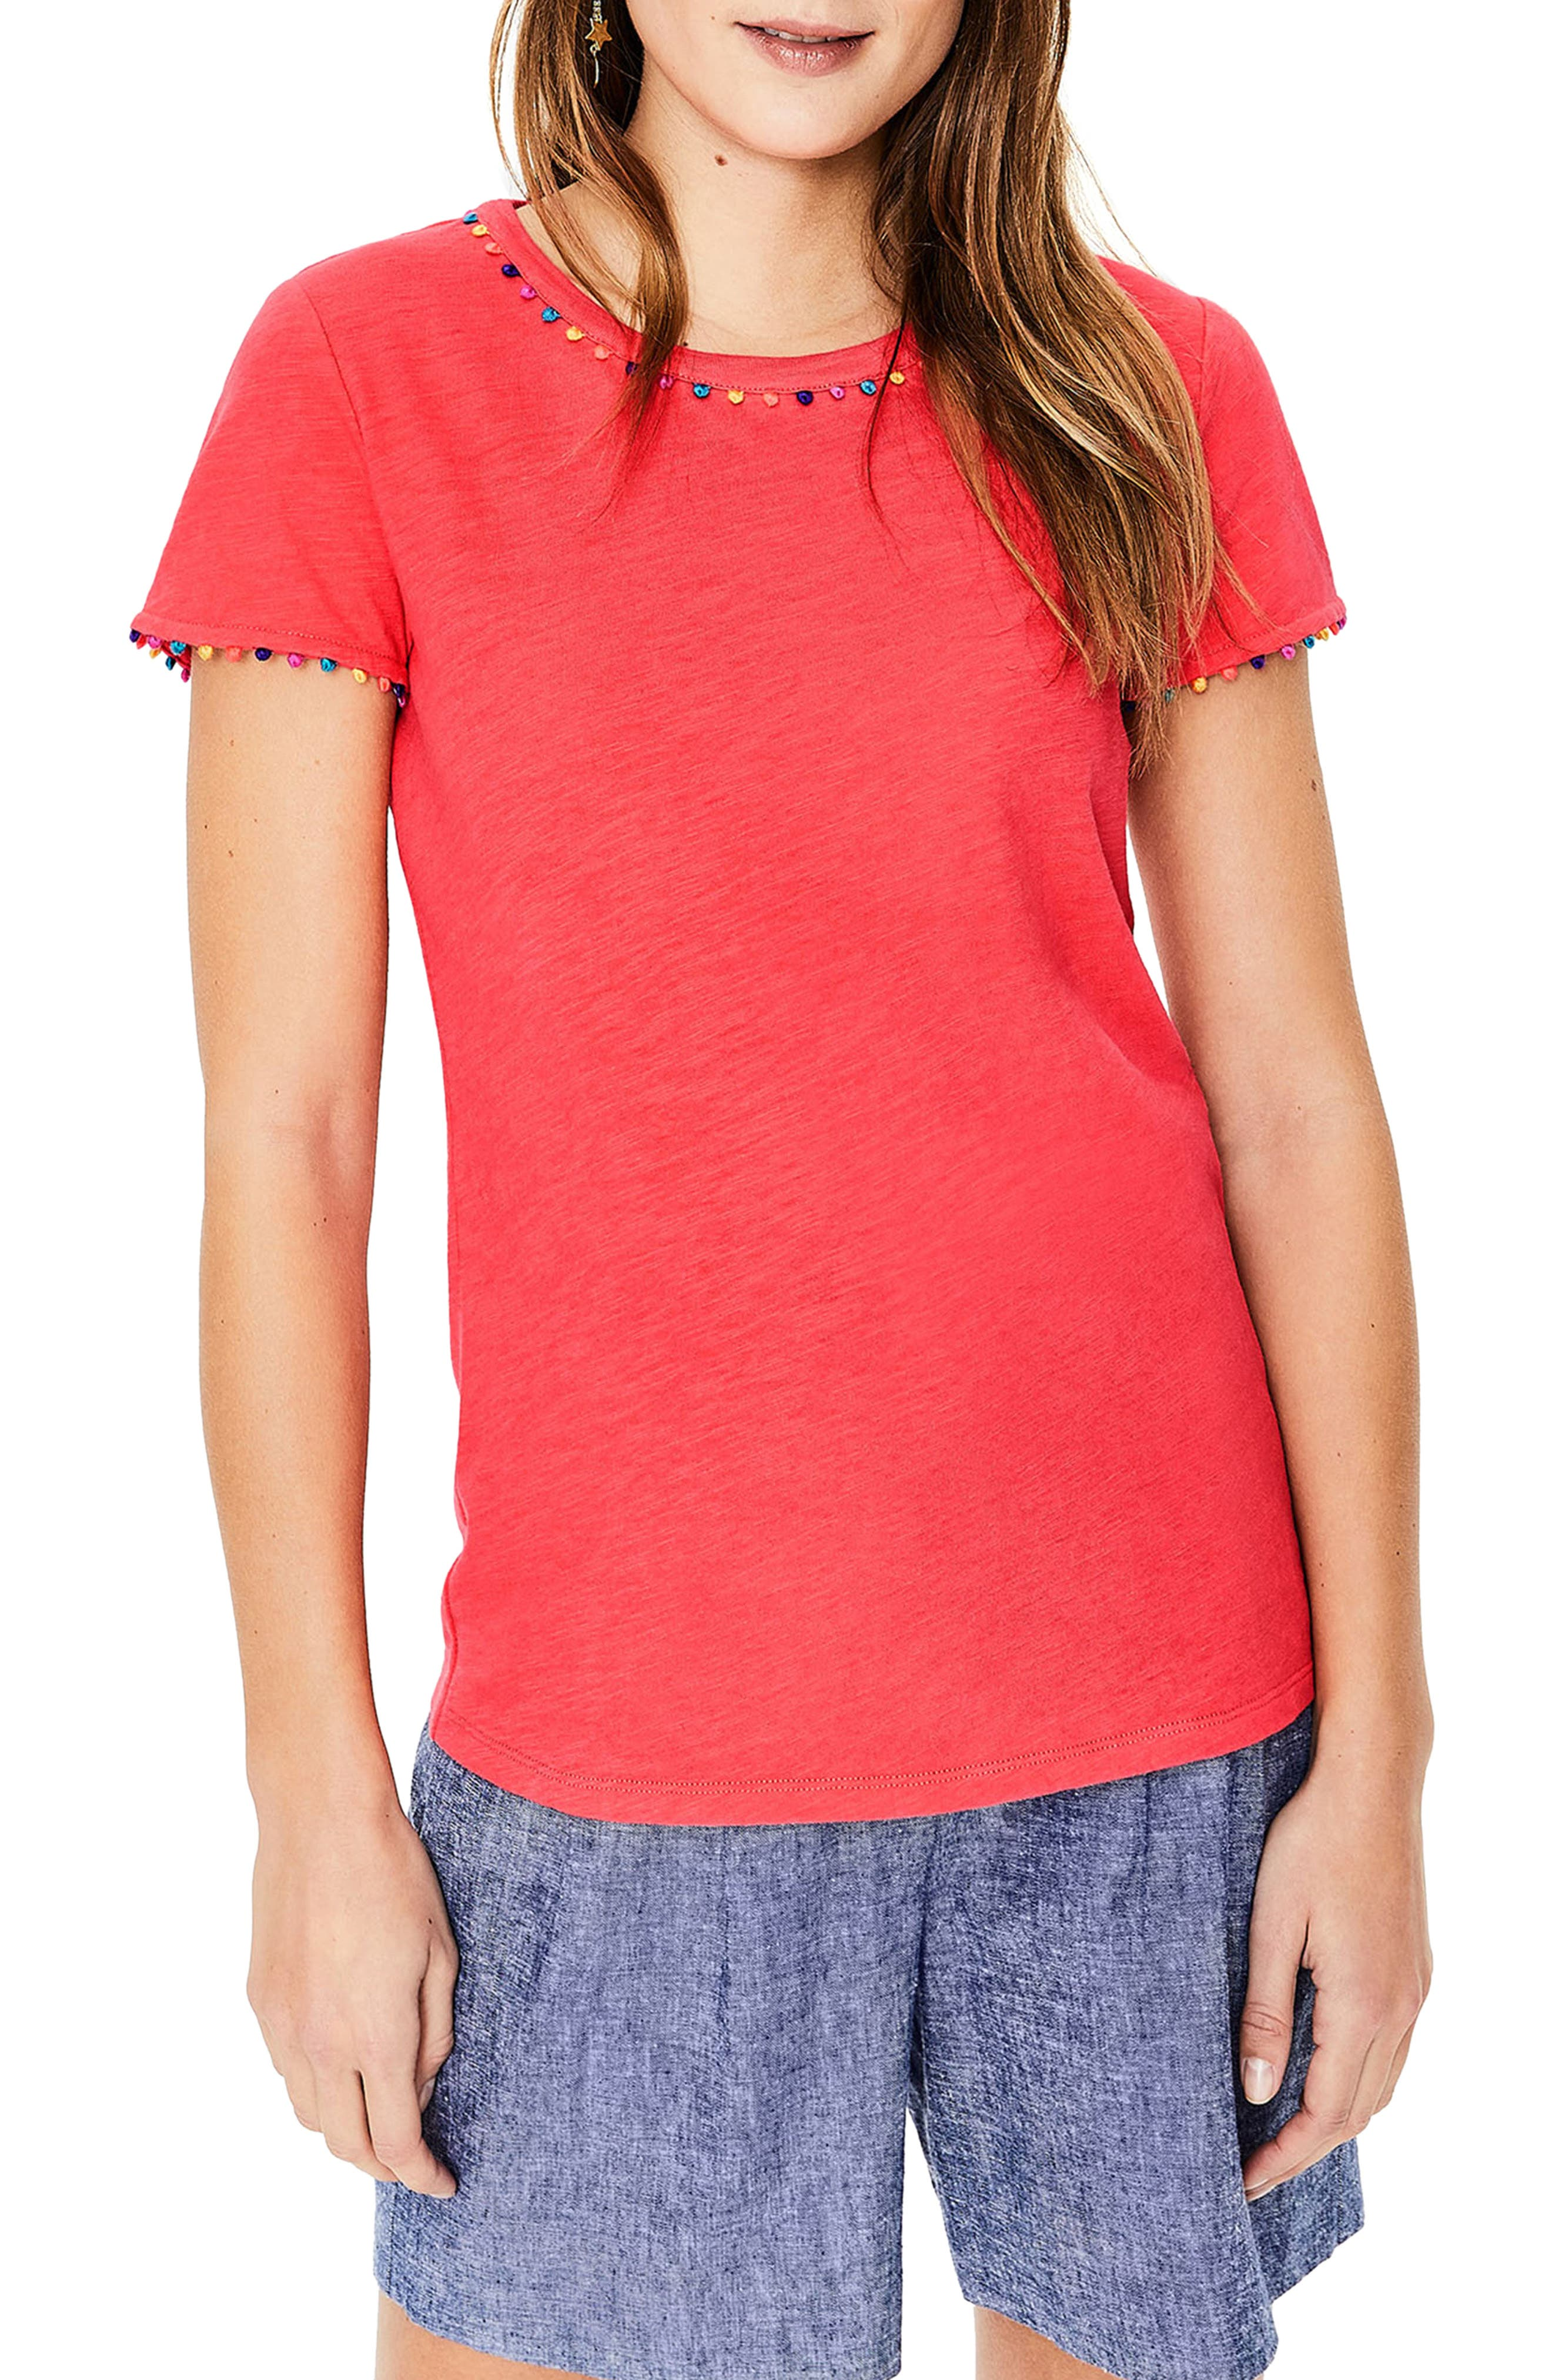 Boden Charlie Embroidery Trim Crewneck Tee, Pink